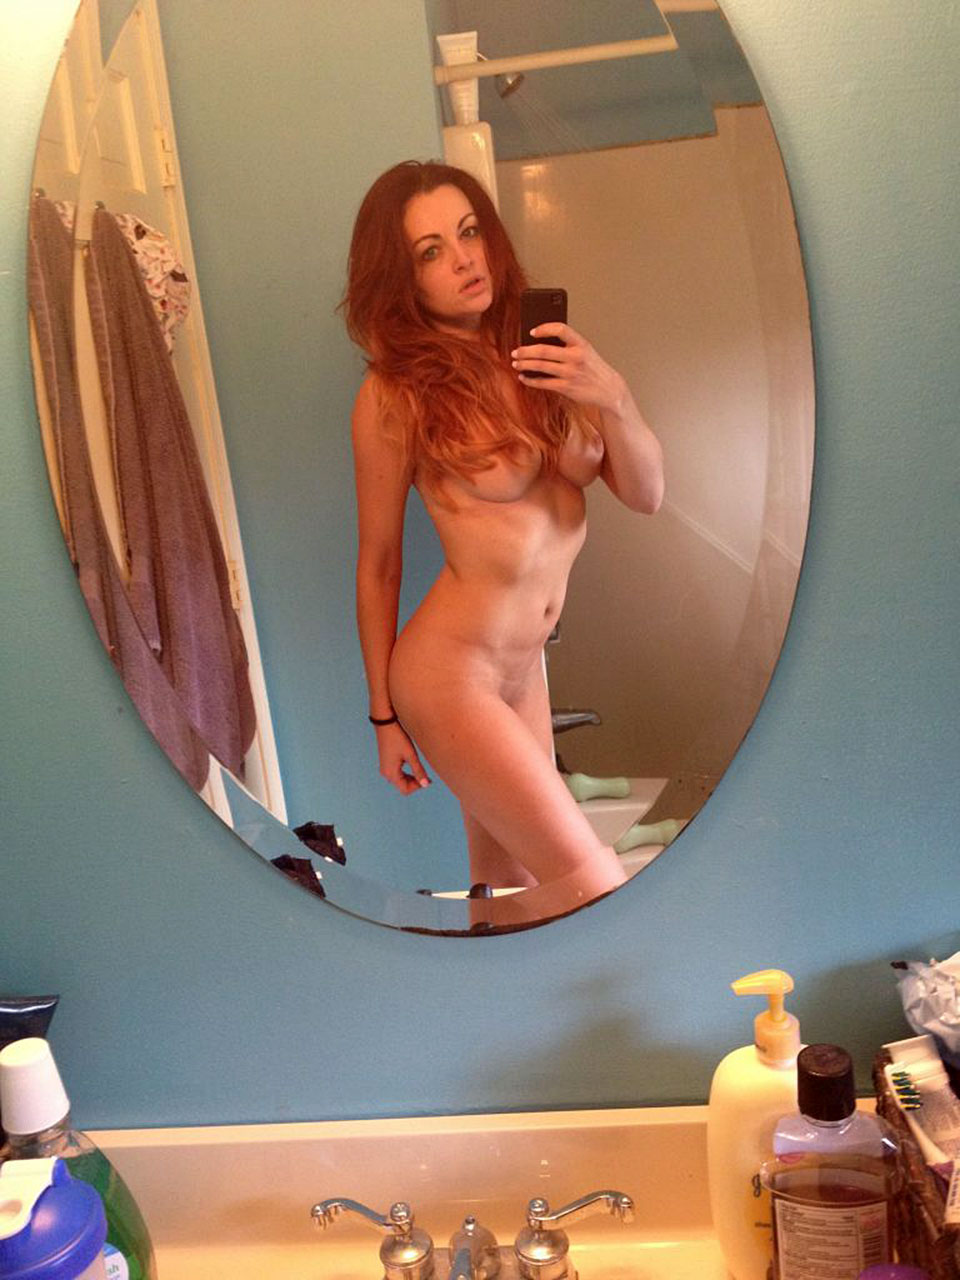 nudes (54 photo), Fappening Celebrity fotos